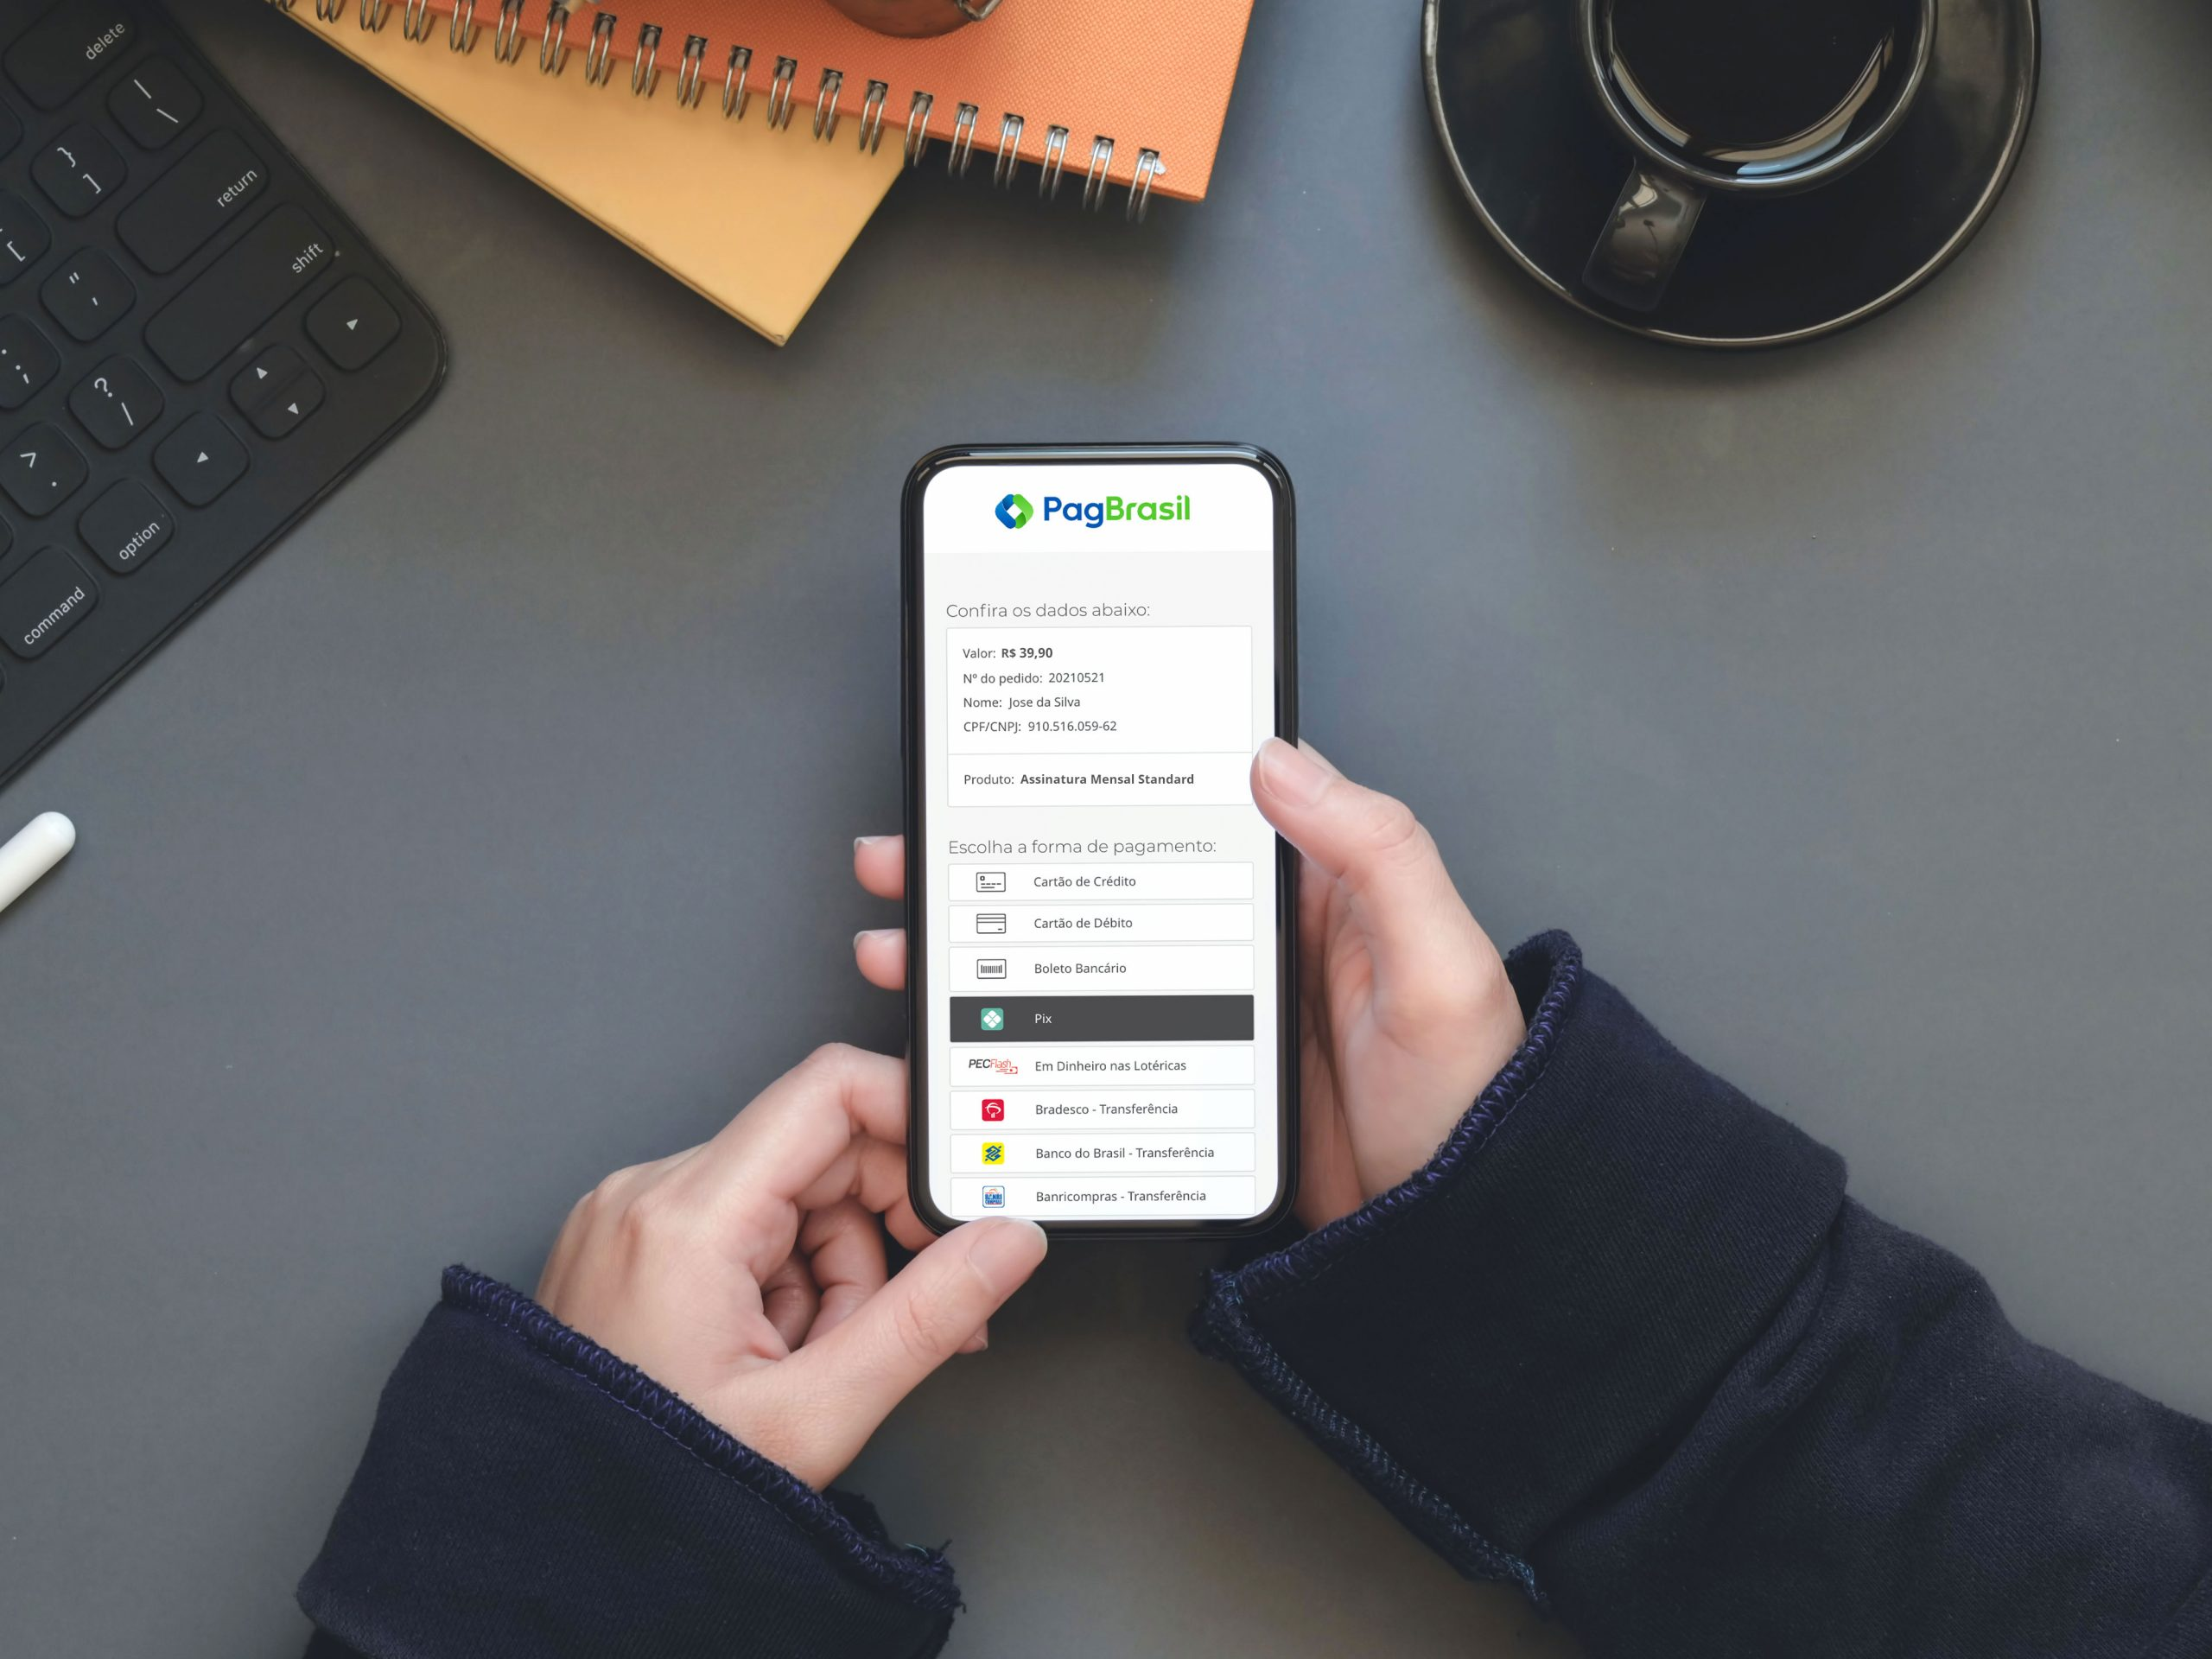 PagBrasil launches new solutions with Pix: recurring payments and payment link